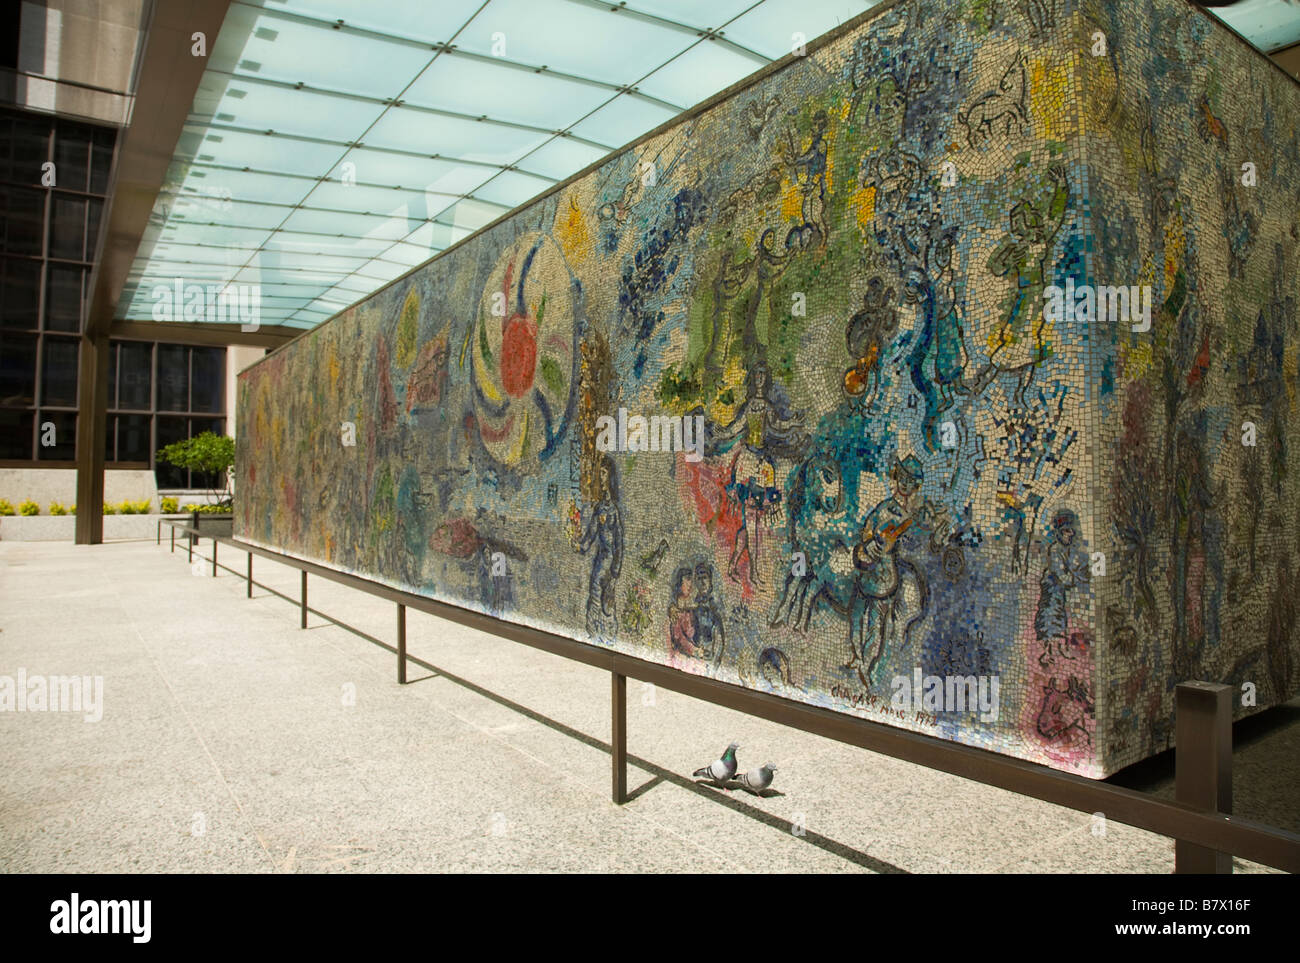 illinois chicago four seasons mosaic mural by marc chagall in illinois chicago four seasons mosaic mural by marc chagall in first national plaza with protective glass shade